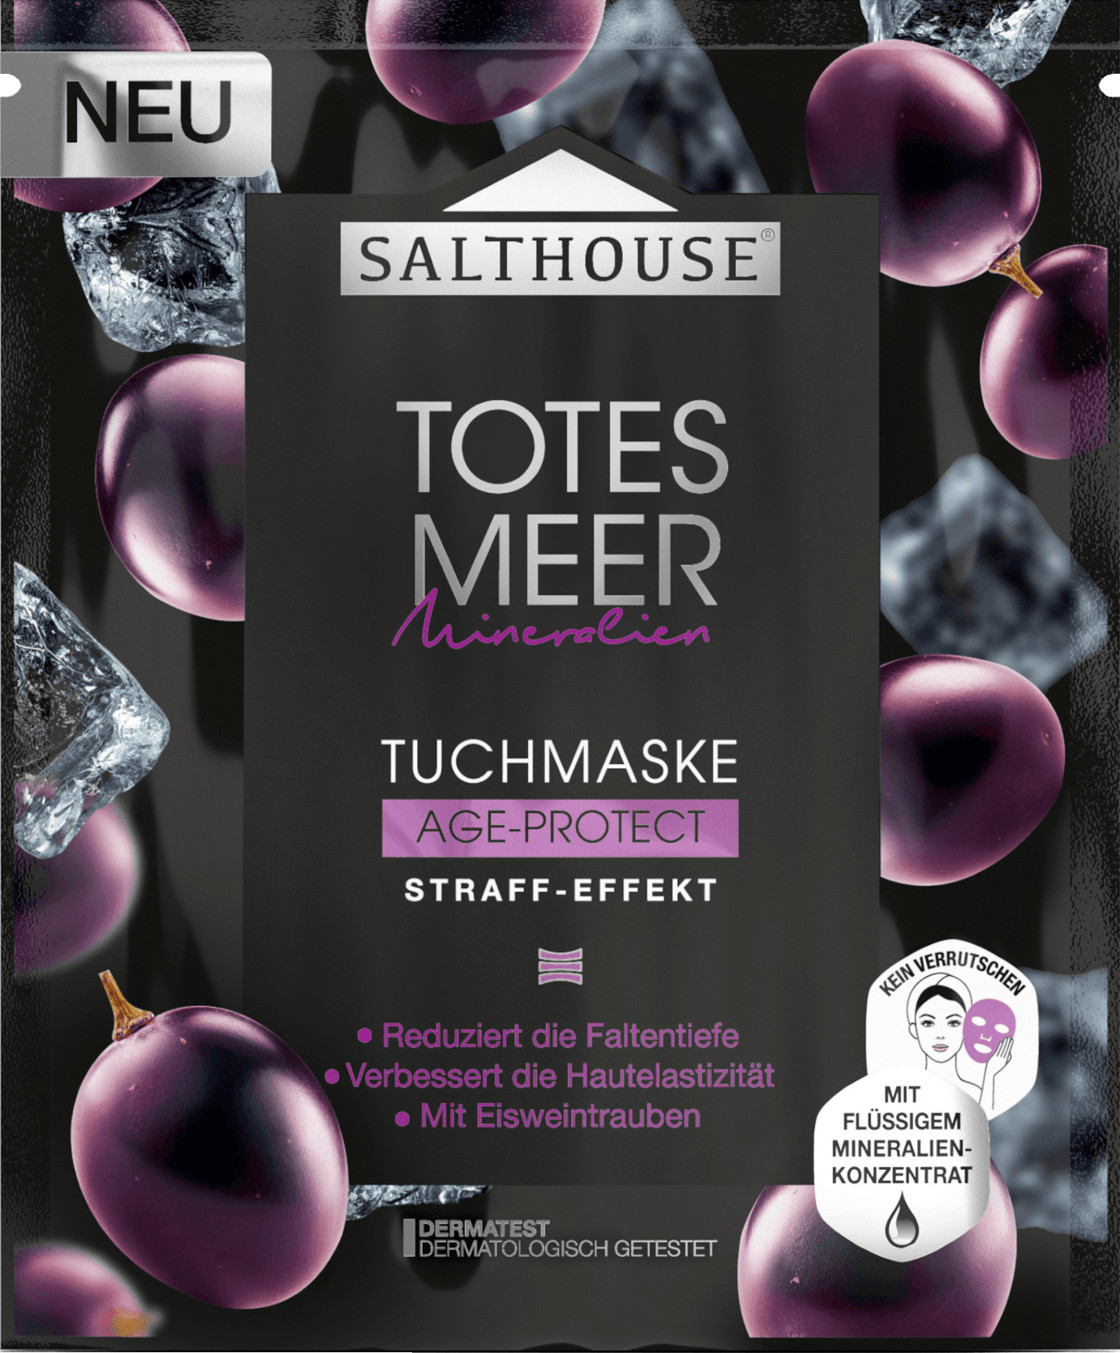 Salthouse Totes Meer Tuchmaske Age-Protect